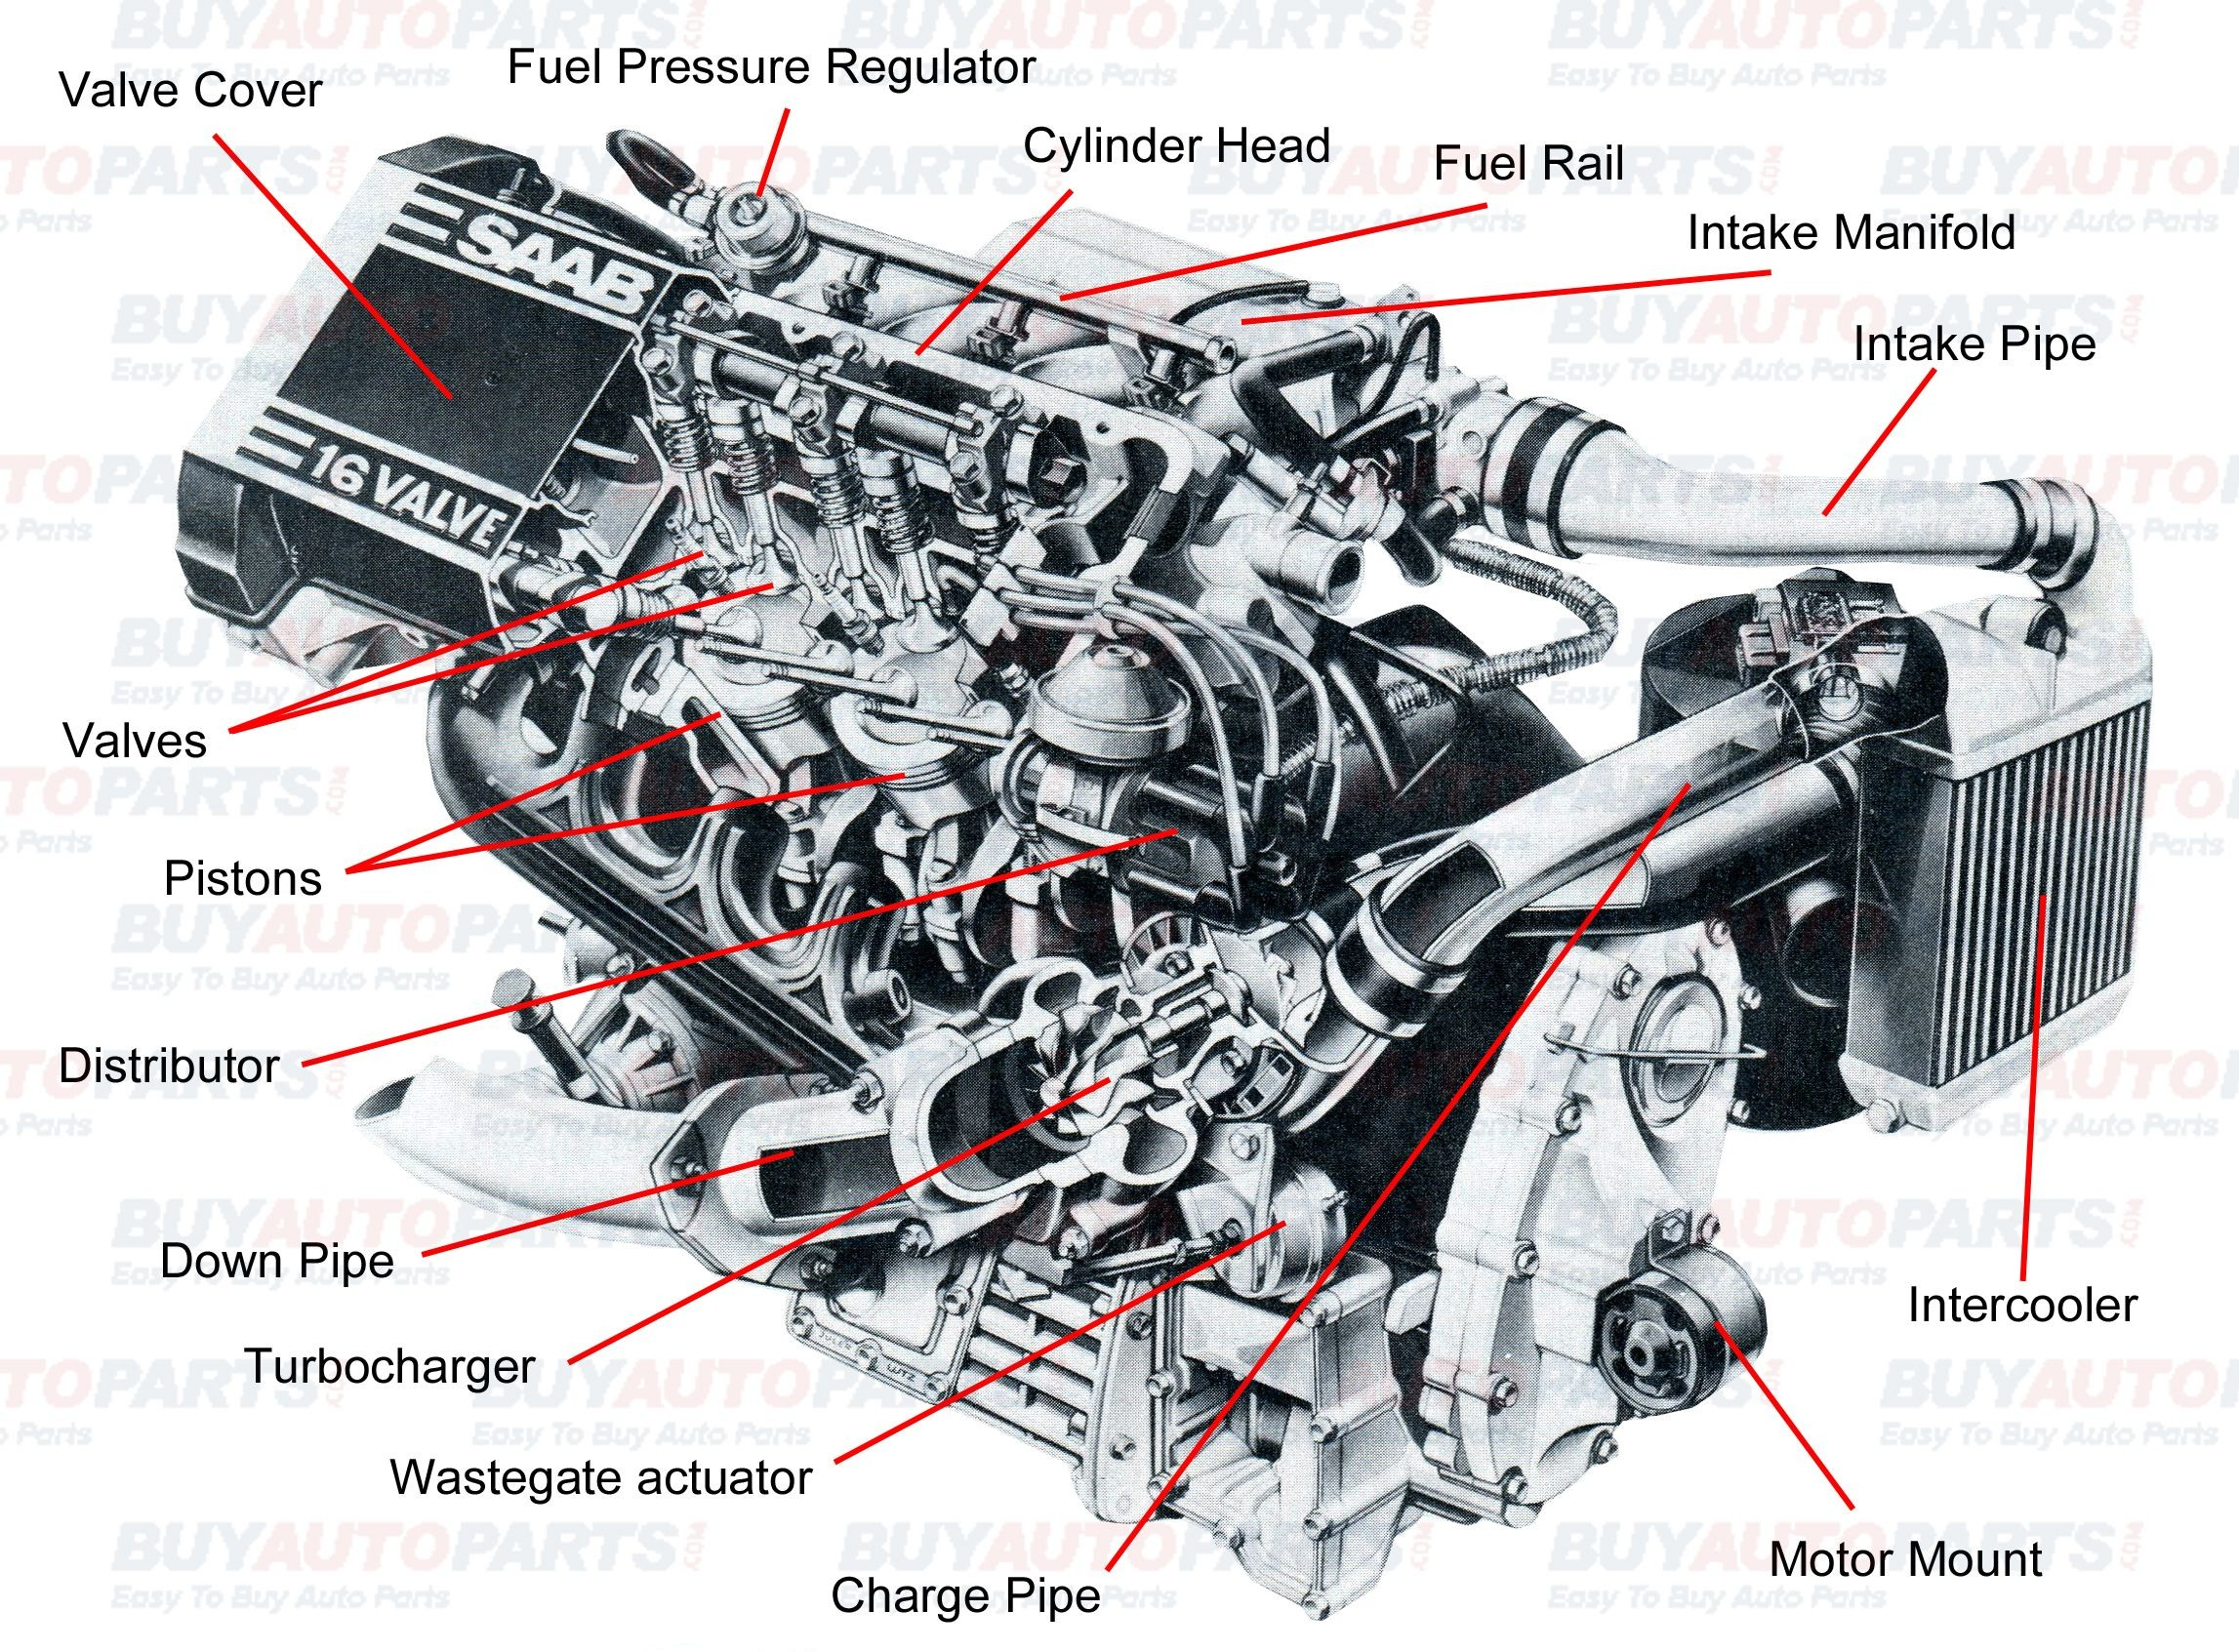 Diagram Of Car Parts Exploded View Ecx Ruckus Mt 1 10 2wd Rtr ...